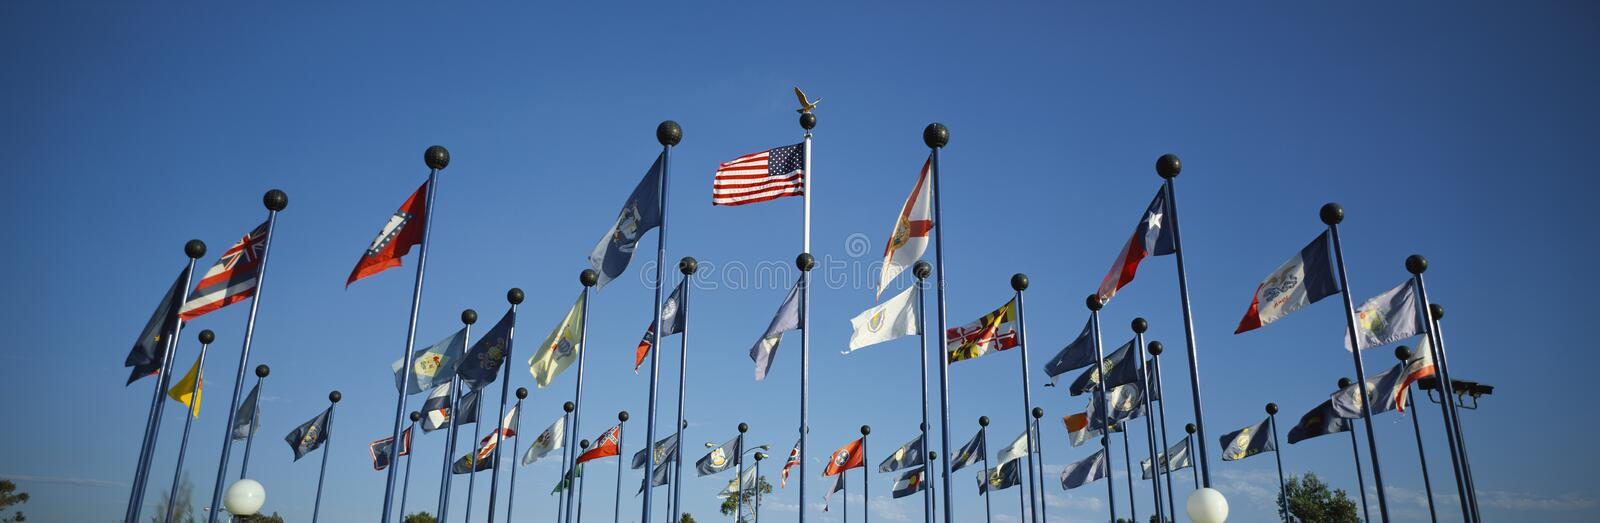 Download 50 State Flags of America stock image. Image of civic - 23151297